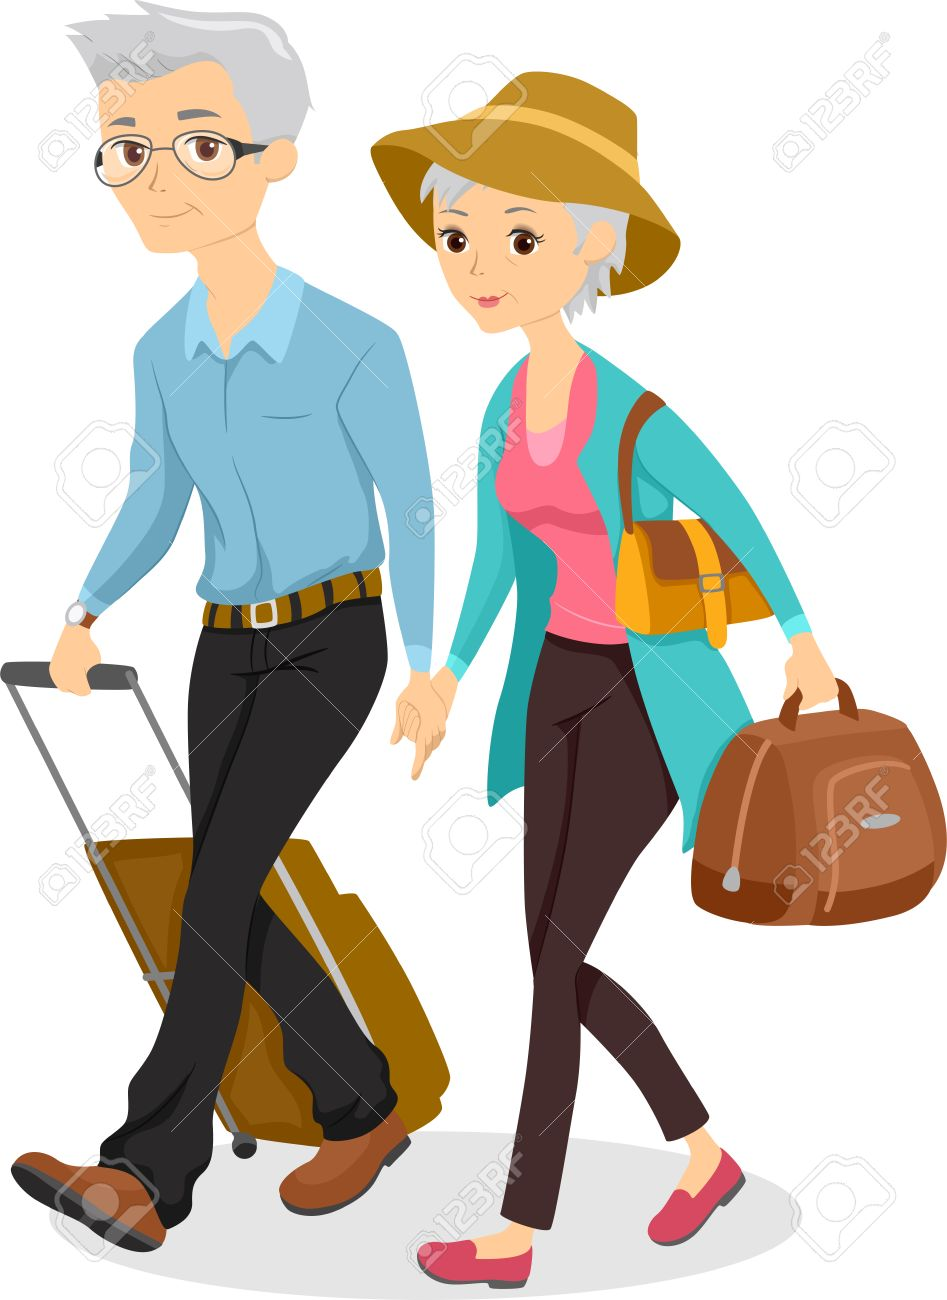 Illustration of an Elderly Couple Traveling Together with Luggage in Tow Stock Photo - 22817741